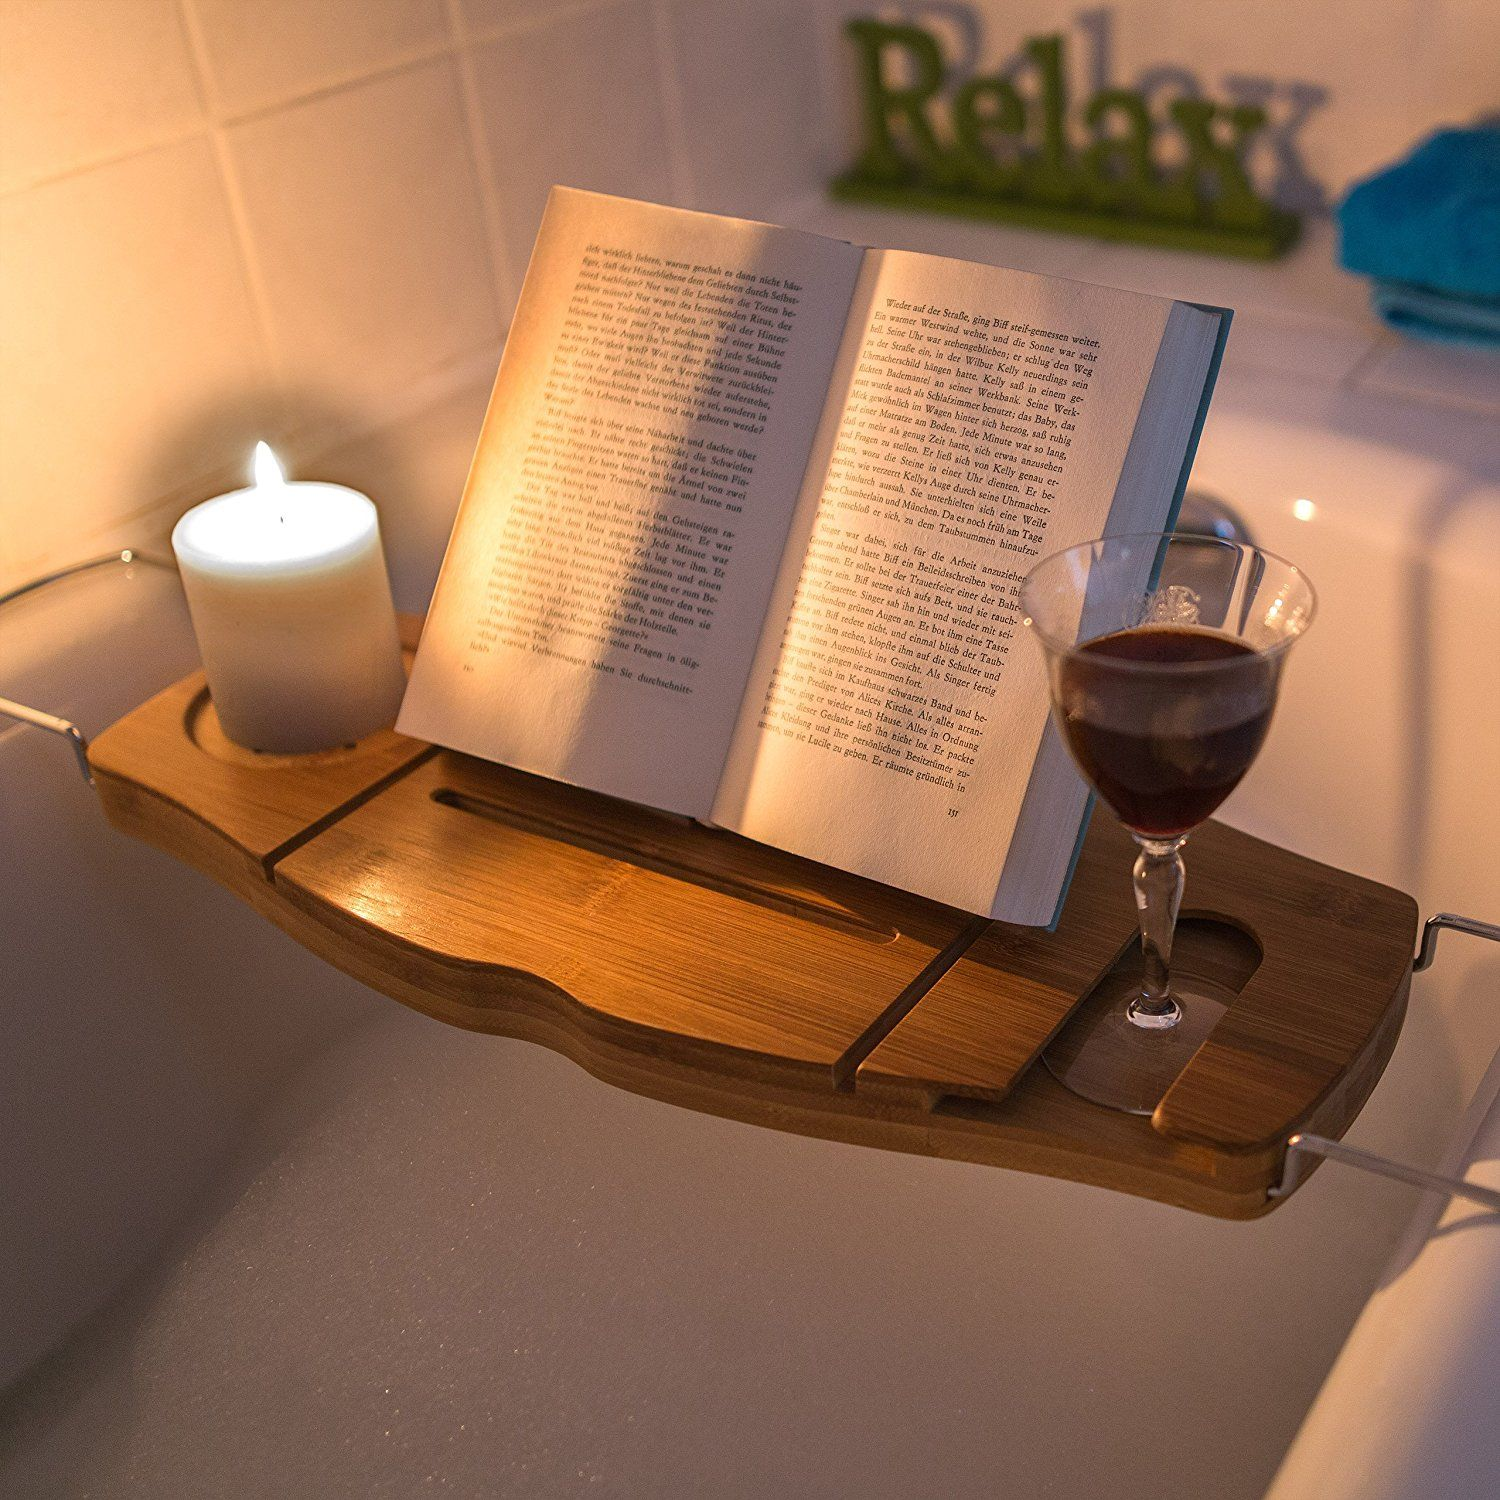 relaxdays bathtub caddy bath tray with book stand 17 5 x 70 x